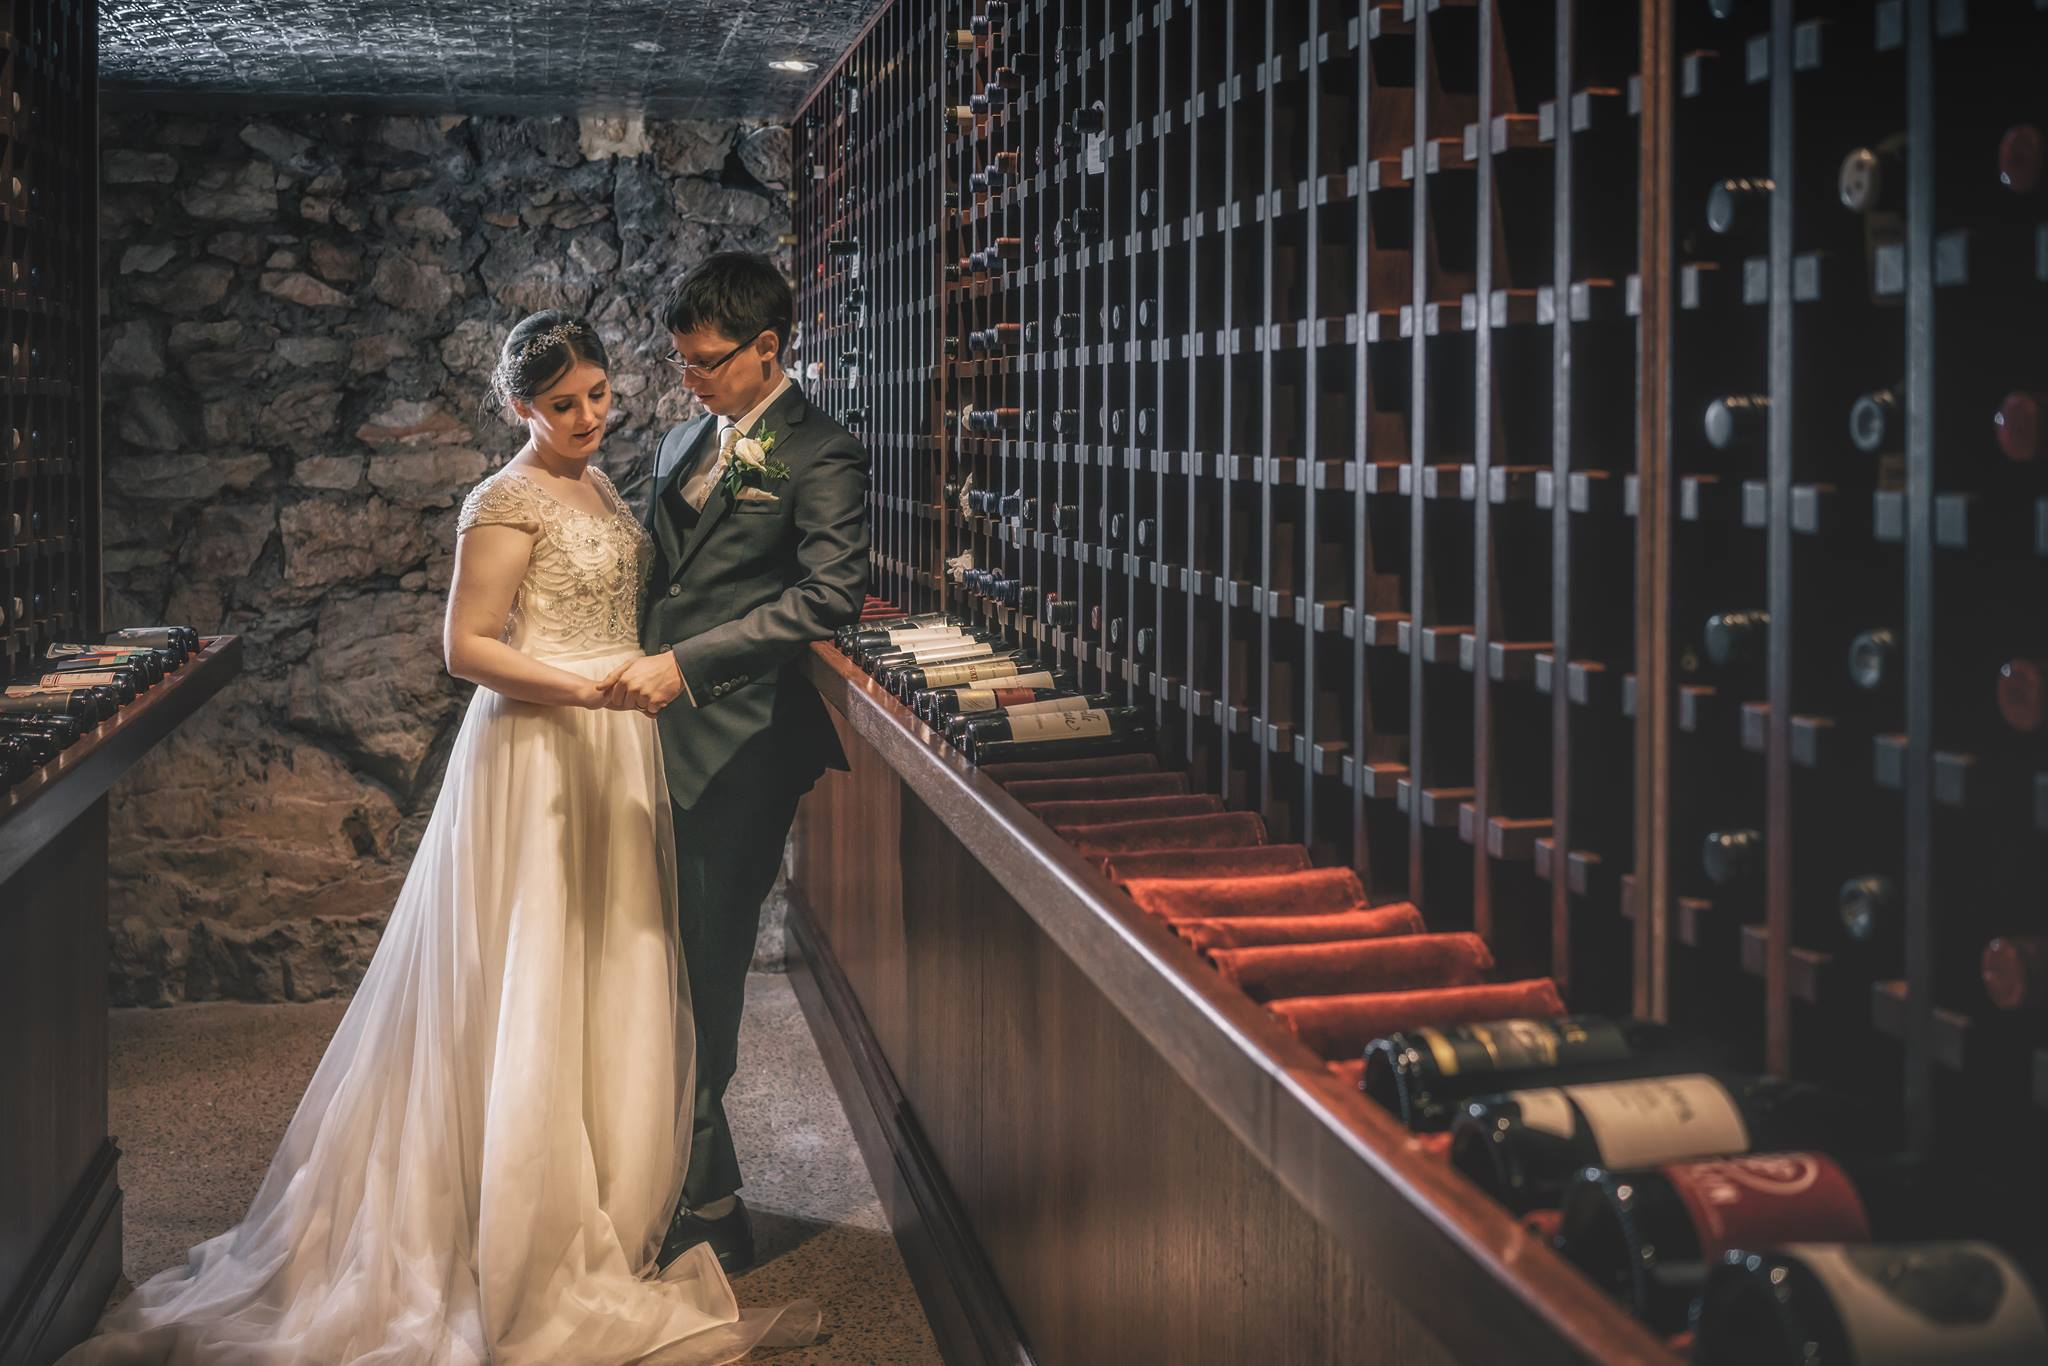 The Winter wedding of Adrian and Bethany in the wine cellar of Mount Lofty House.